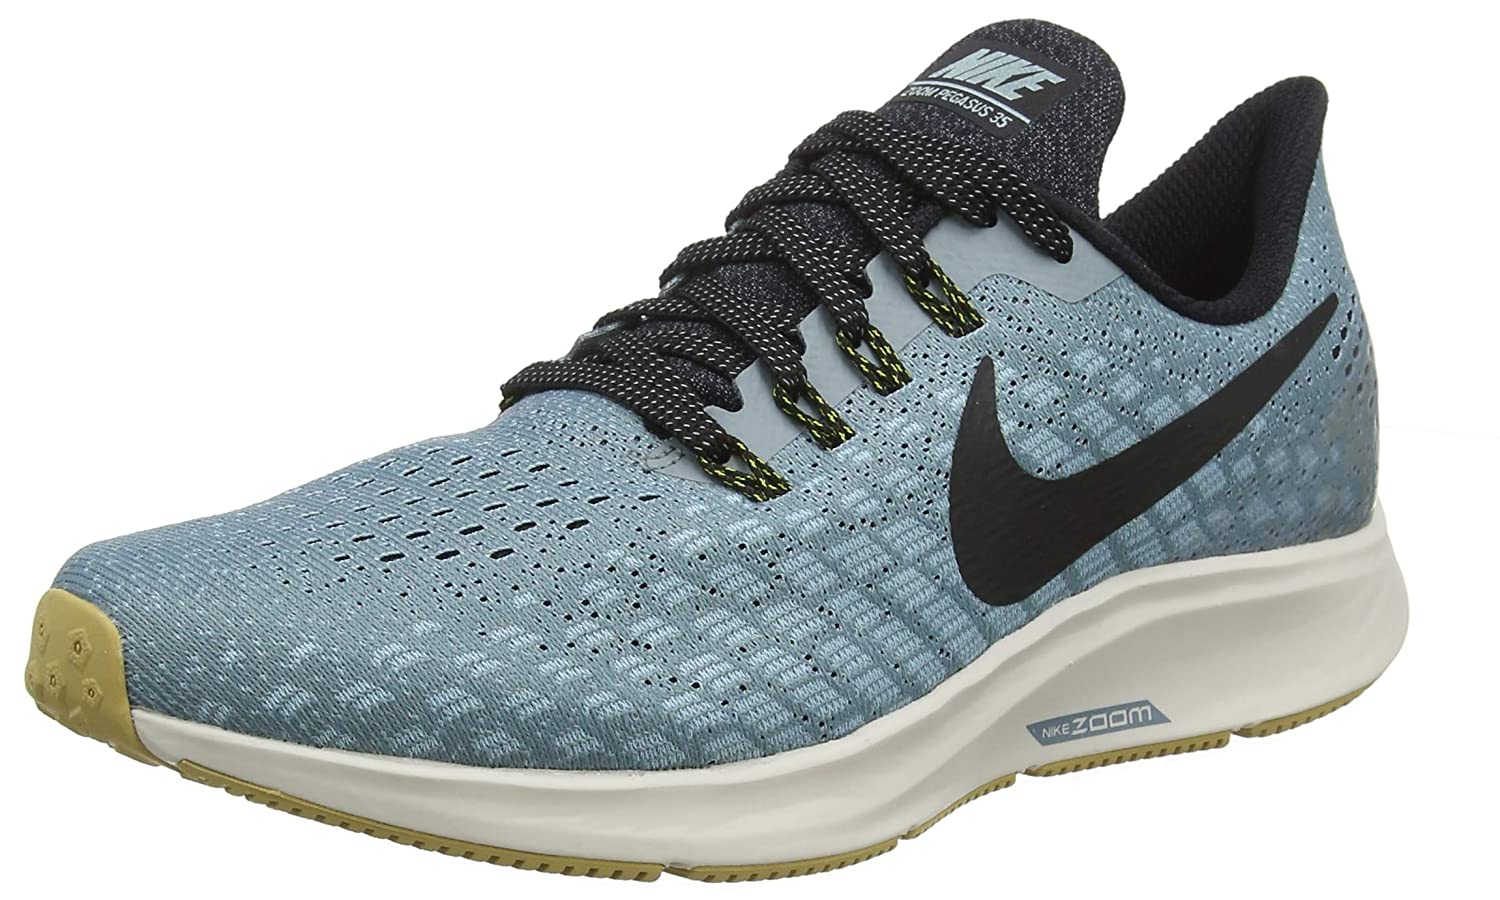 9e9b4e984 Amazon.com | Nike Men's Air Zoom Pegasus 35 Aviator Grey/Black-Blue Fury  12.5 | Road Running